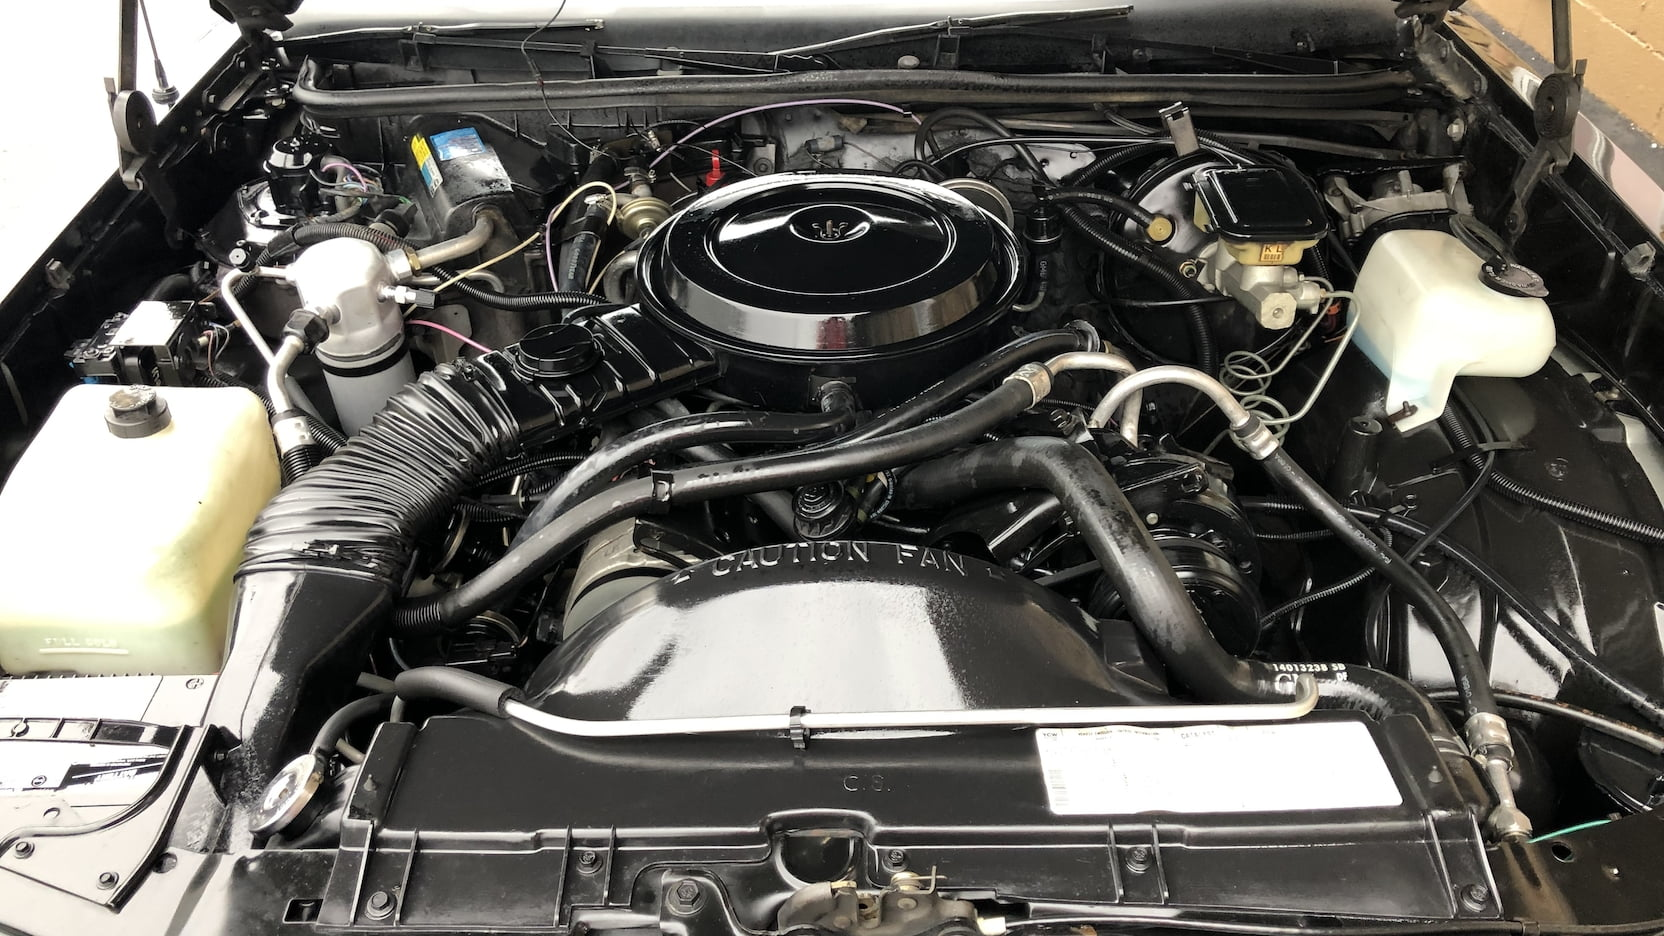 1986 Chevrolet Monte Carlo SS engine